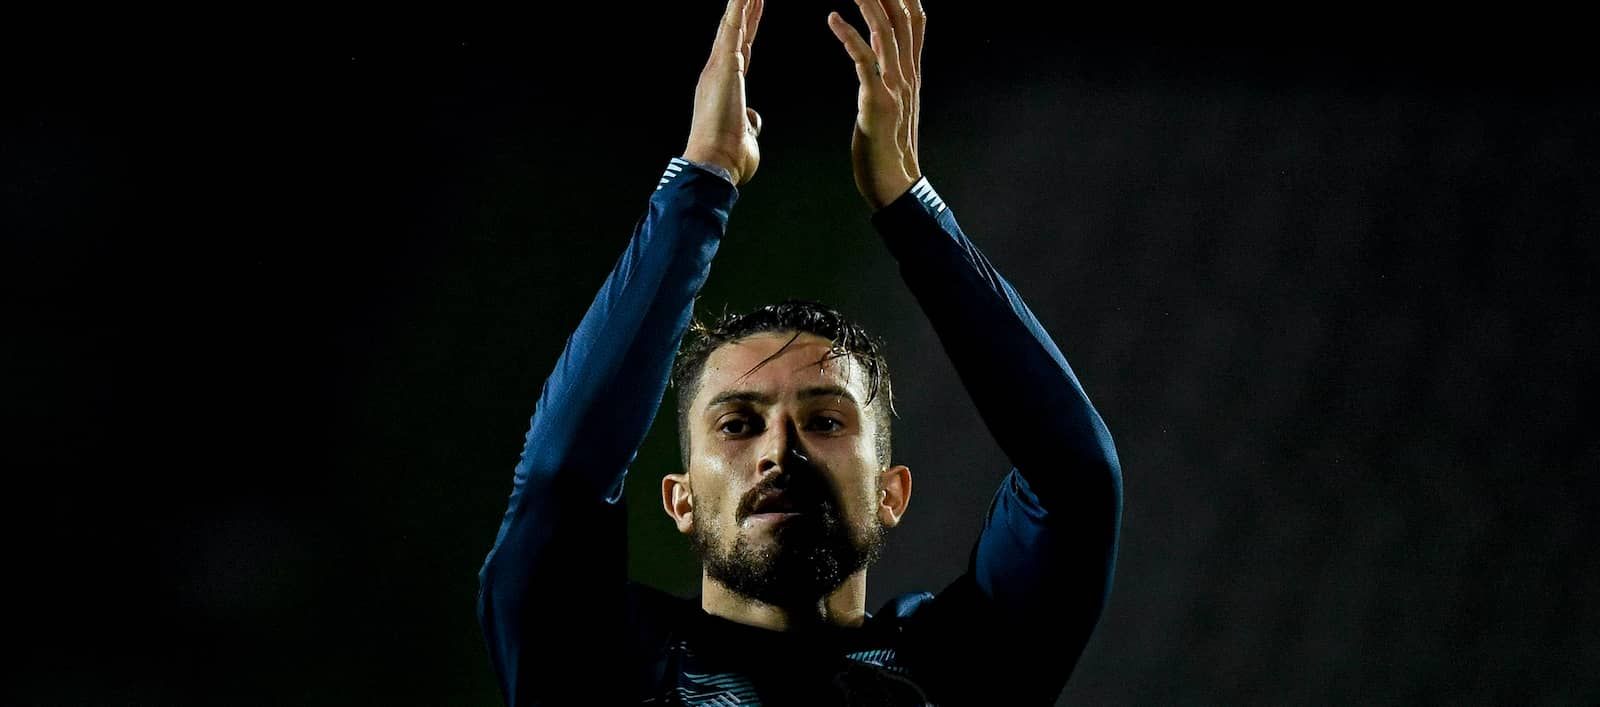 FC Porto's Alex Telles agrees five year deal to join Man United